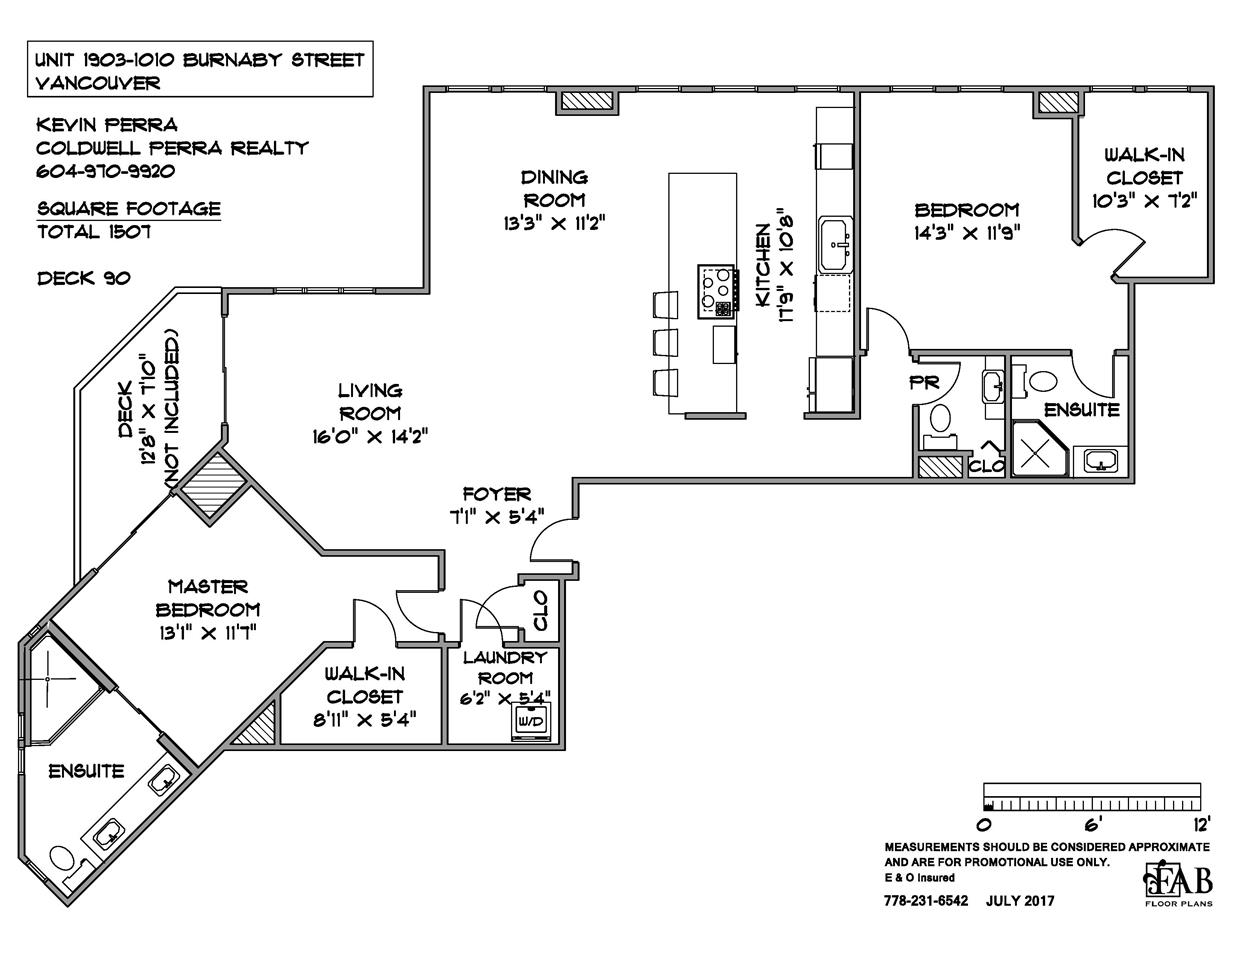 Condo Apartment at 1903 1010 BURNABY STREET, Unit 1903, Vancouver West, British Columbia. Image 19